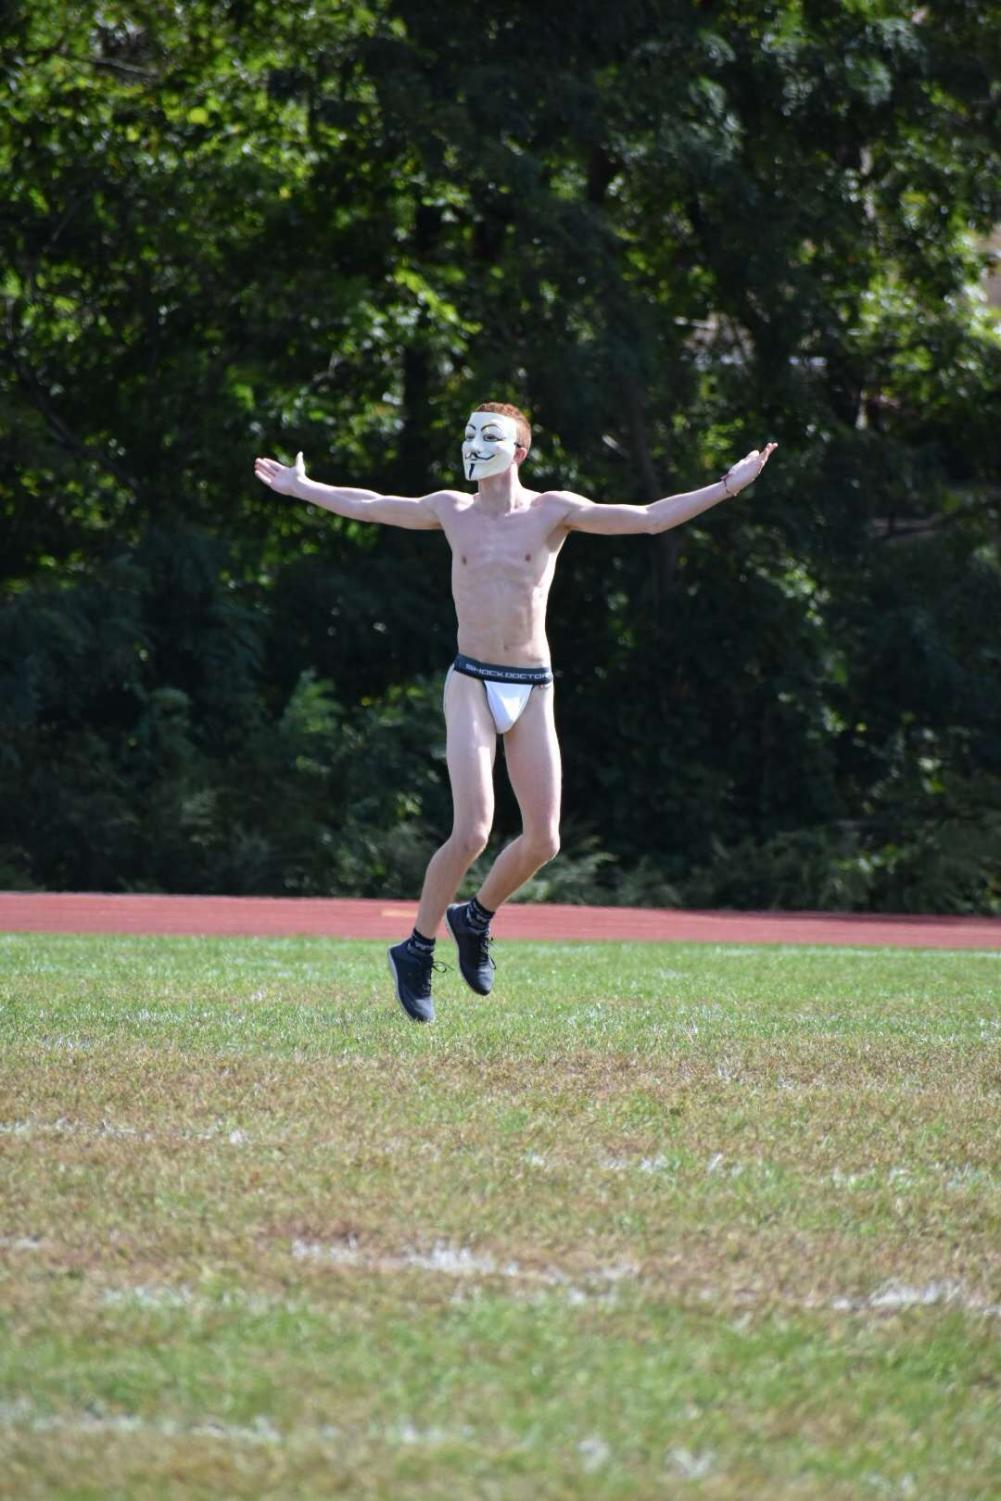 The streaker, prancing around the Ward Melville field.